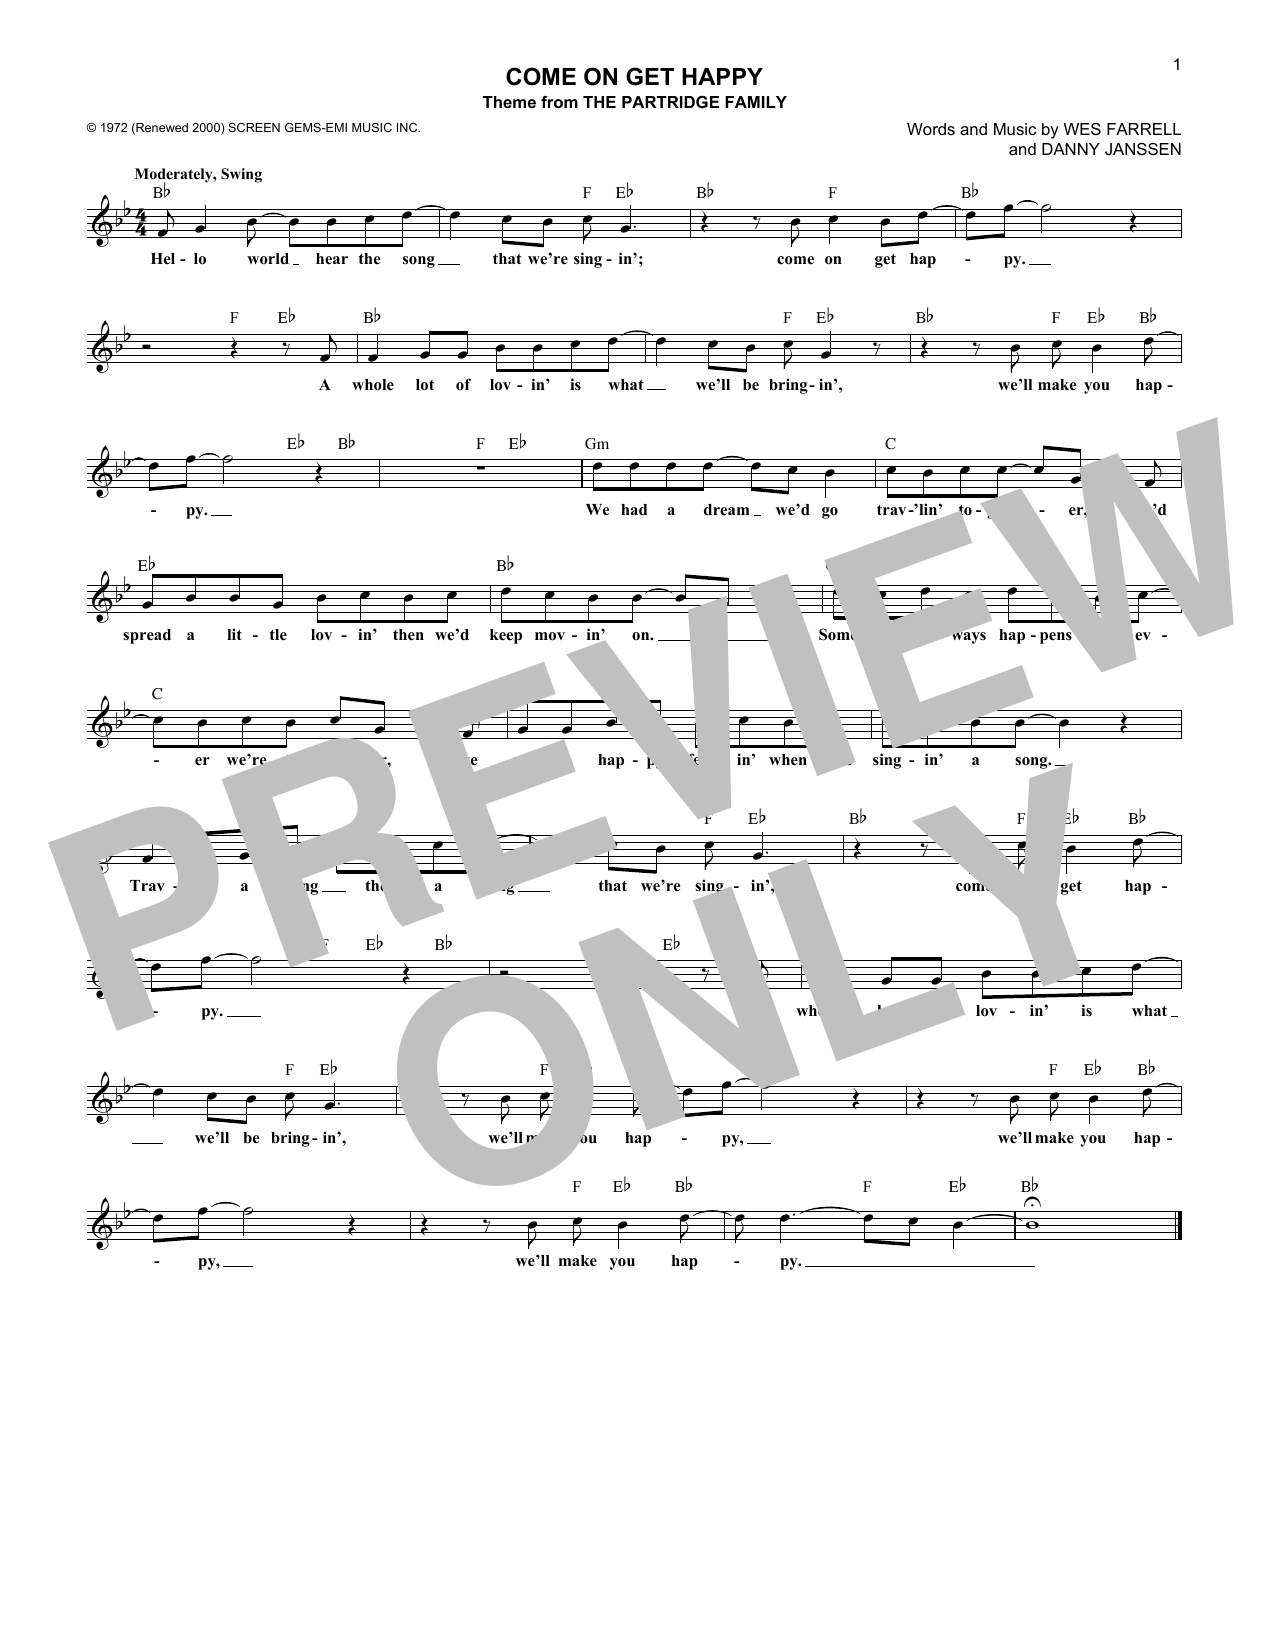 The Partridge Family Come On Get Happy sheet music notes and chords - download printable PDF.